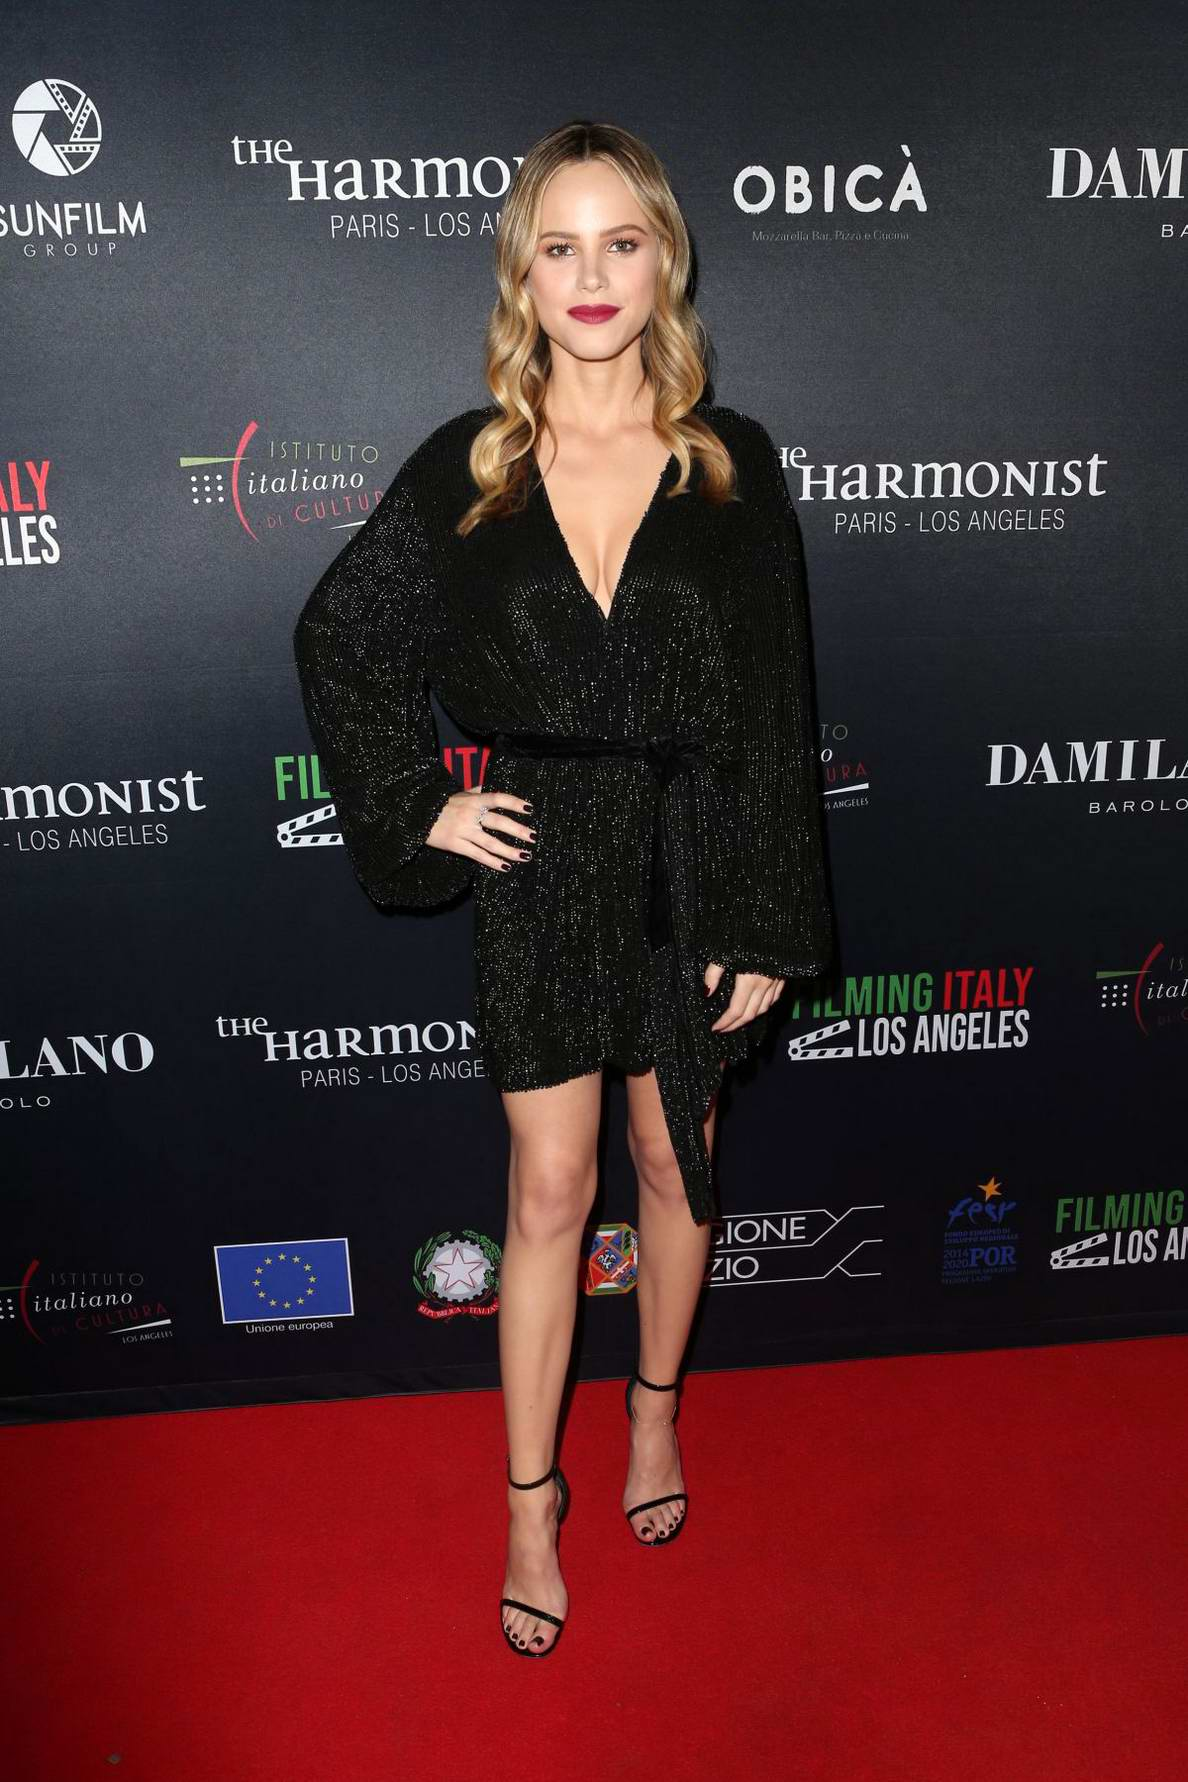 Halston Sage attends the Filming in Italy Festival in Los Angeles